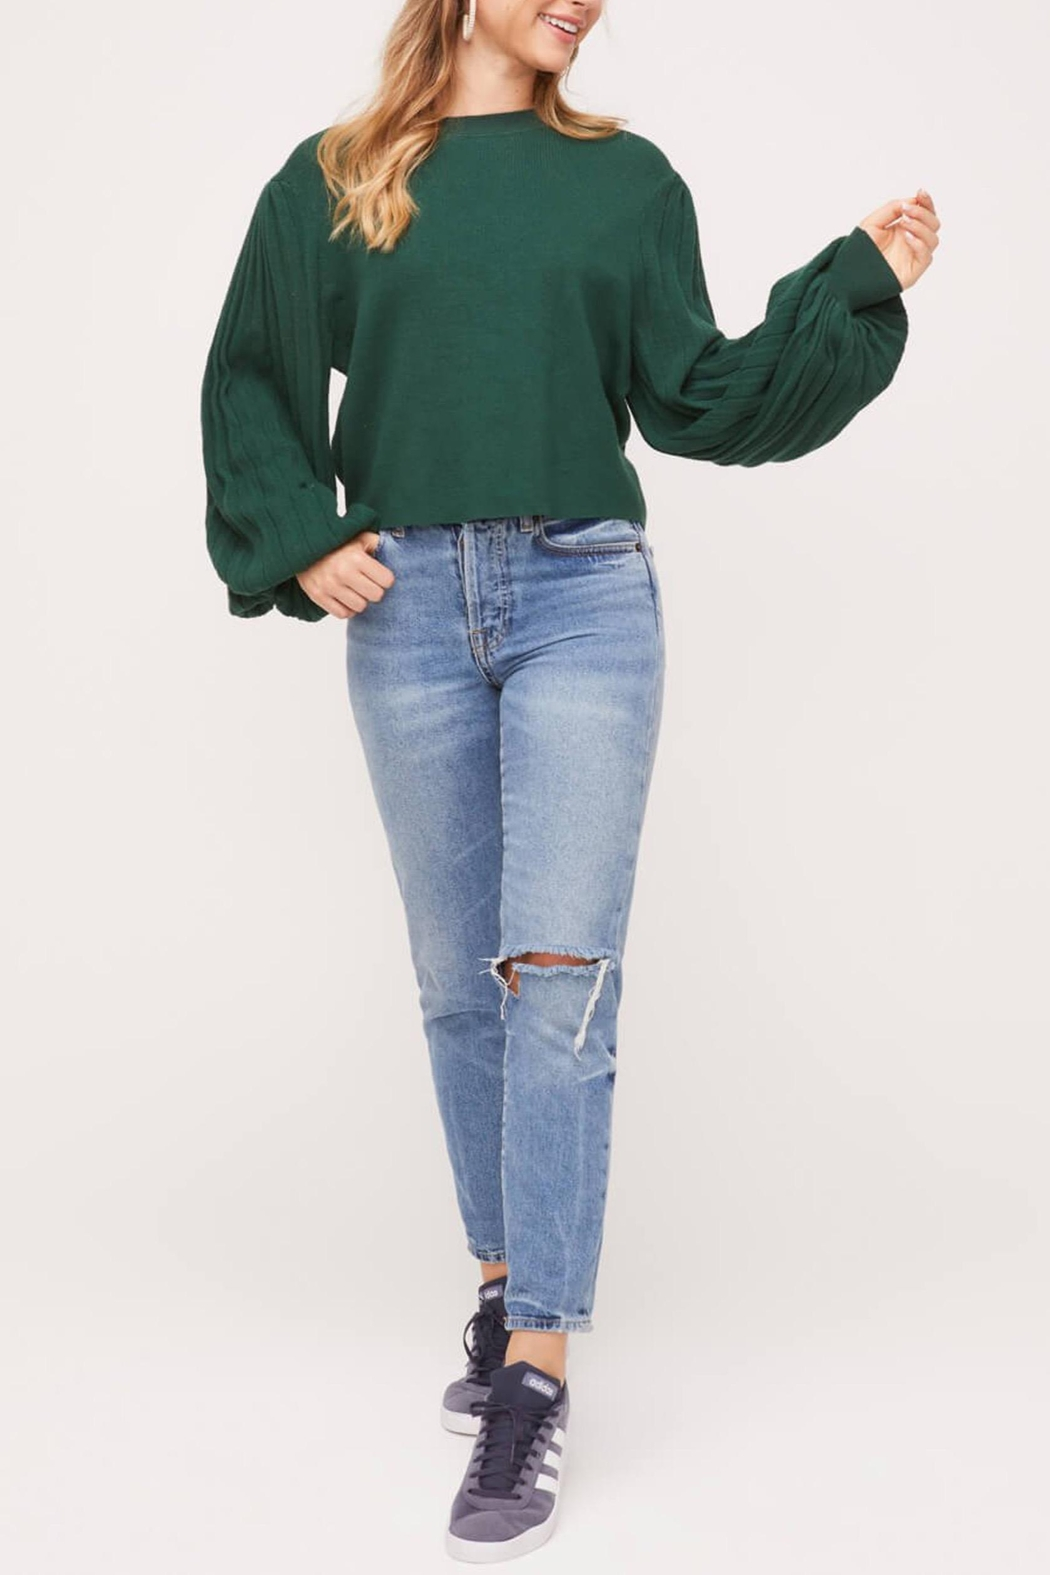 Lush Pleated-Sleeve Crewneck-Pullover Sweater - Front Full Image